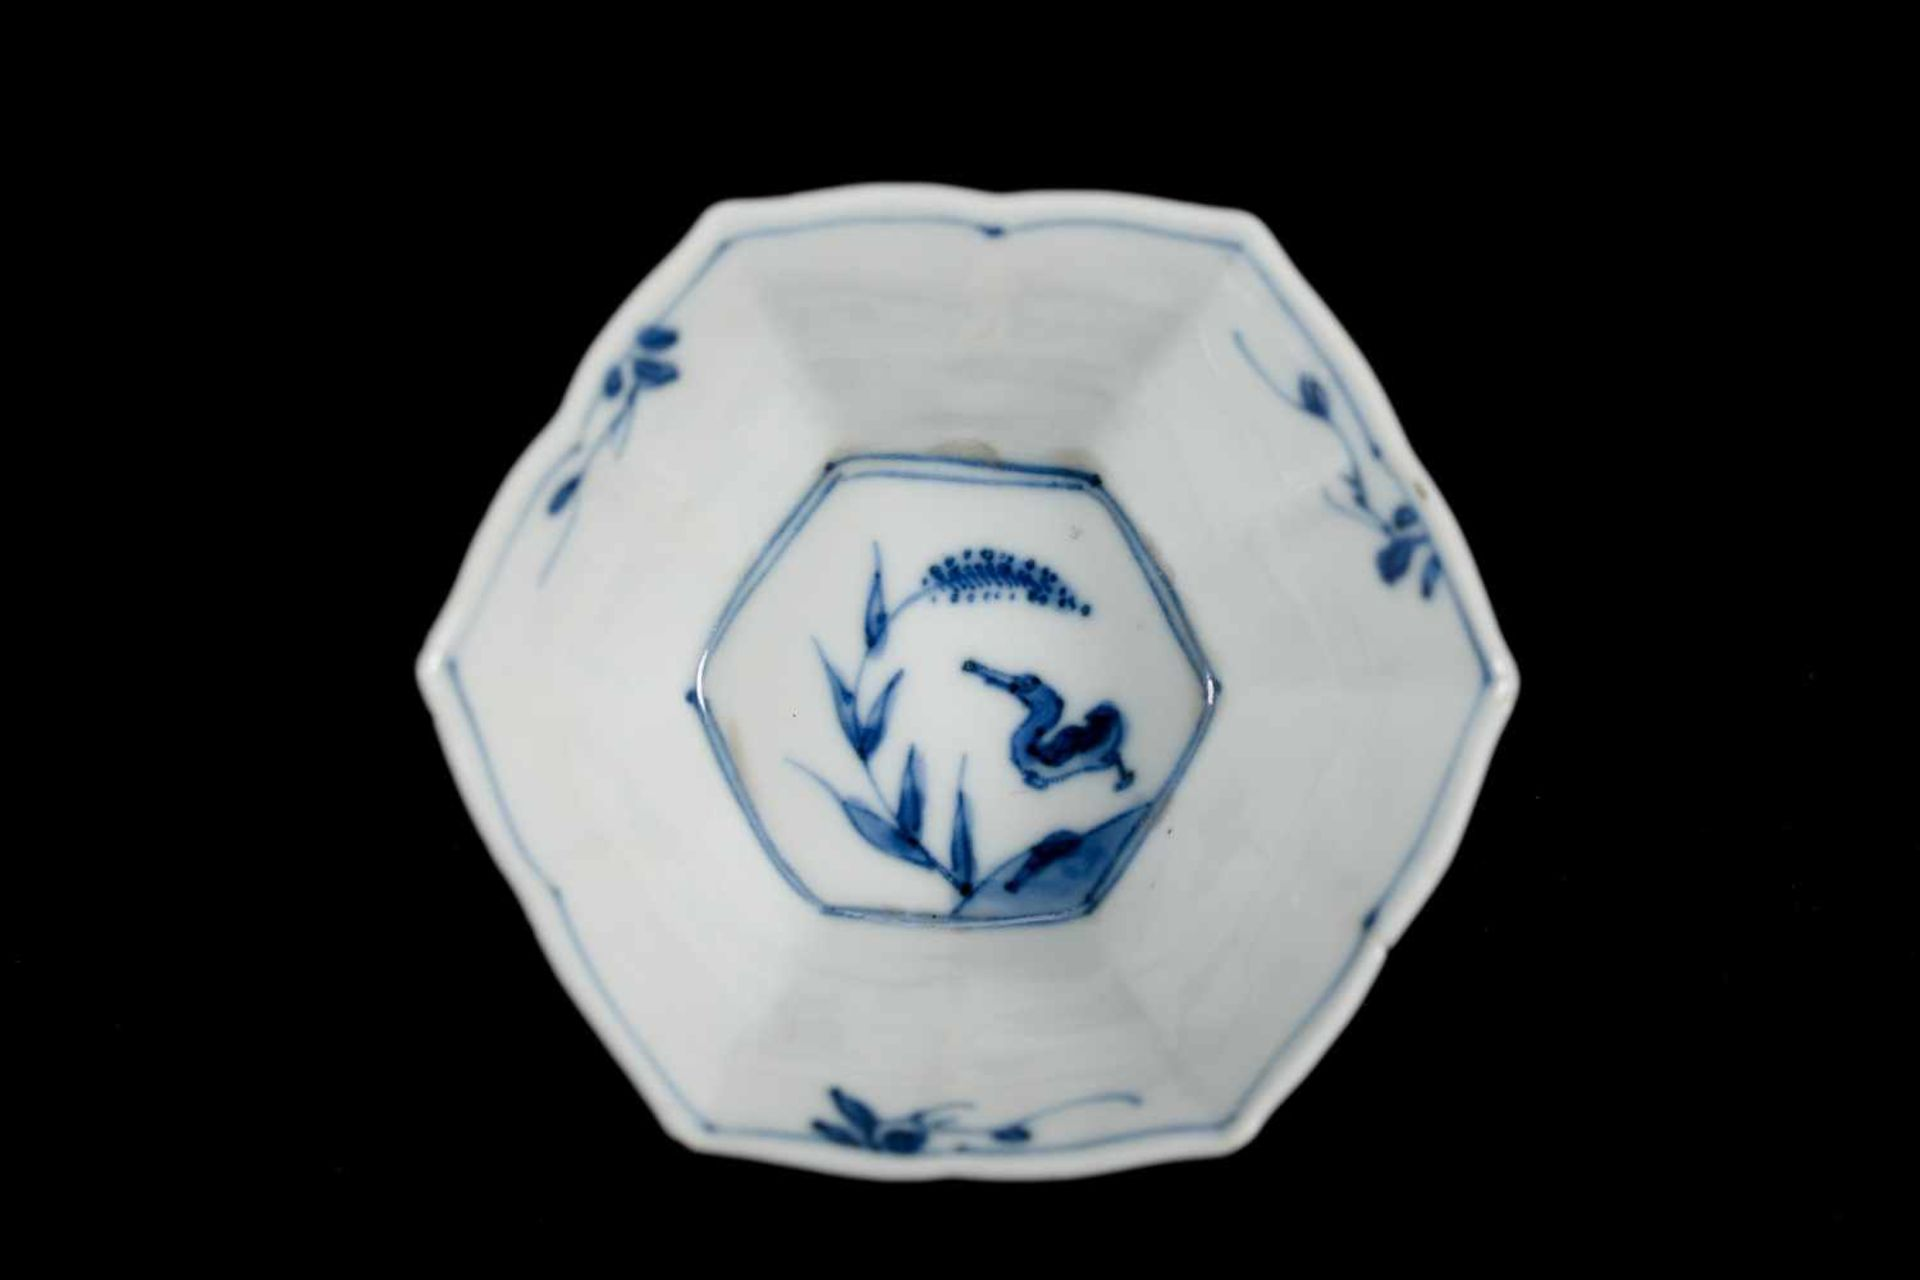 A set of three hexagonal blue and white porcelain cups with saucers, decorated with ducks, flowers - Bild 12 aus 12